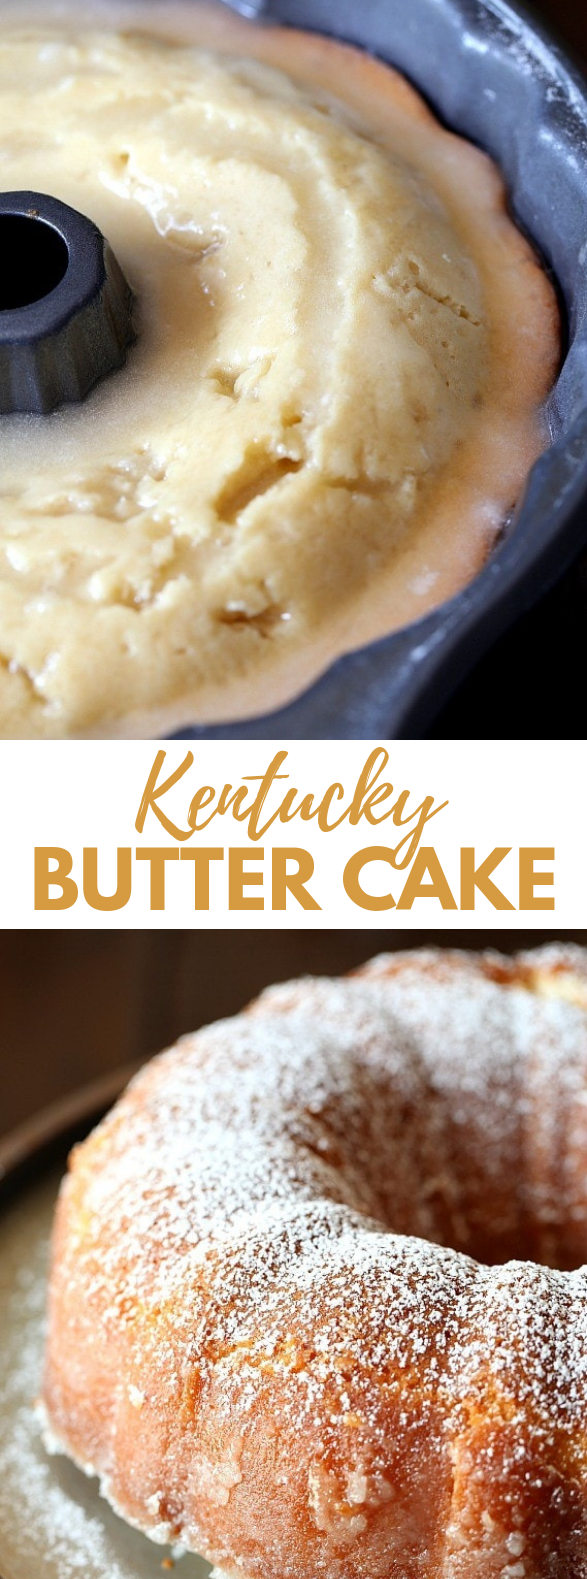 KENTUCKY BUTTER CAKE #dessert #sweetbutter